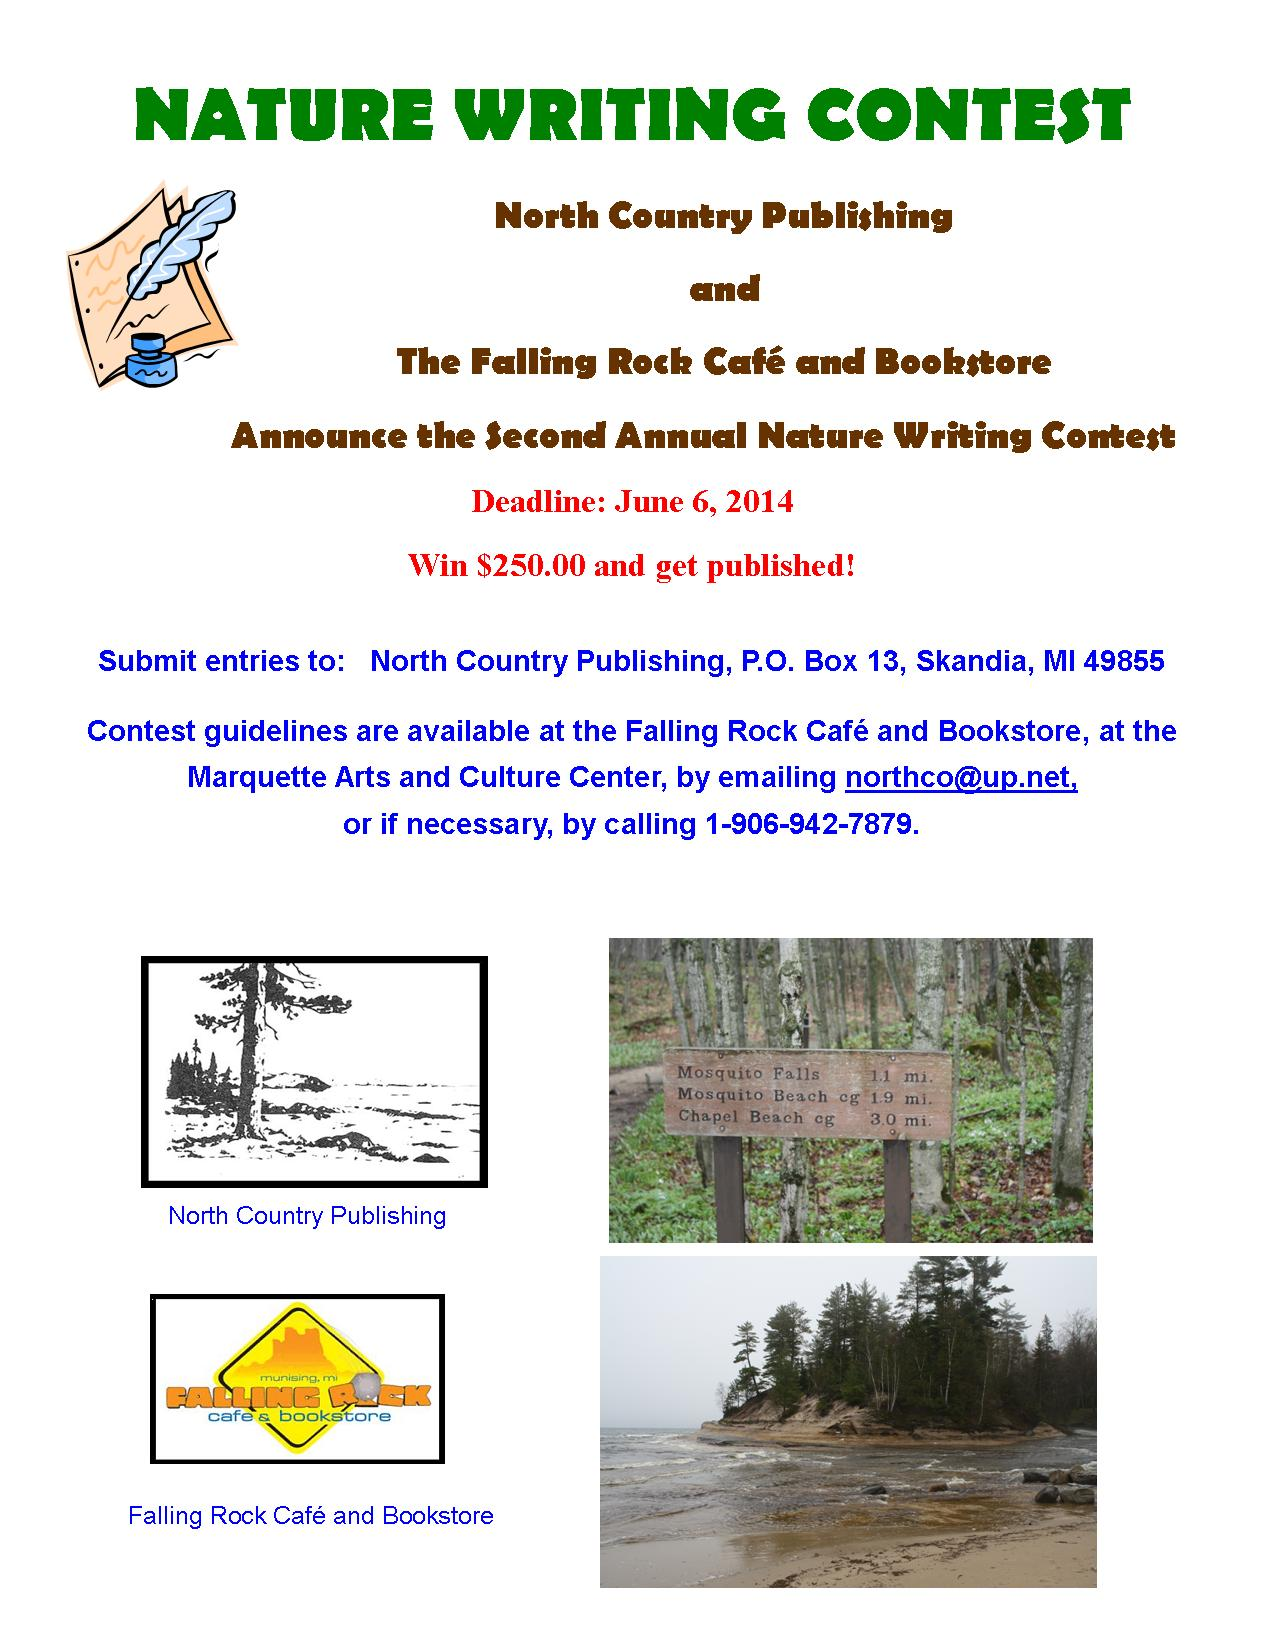 Nature writing awards and contests